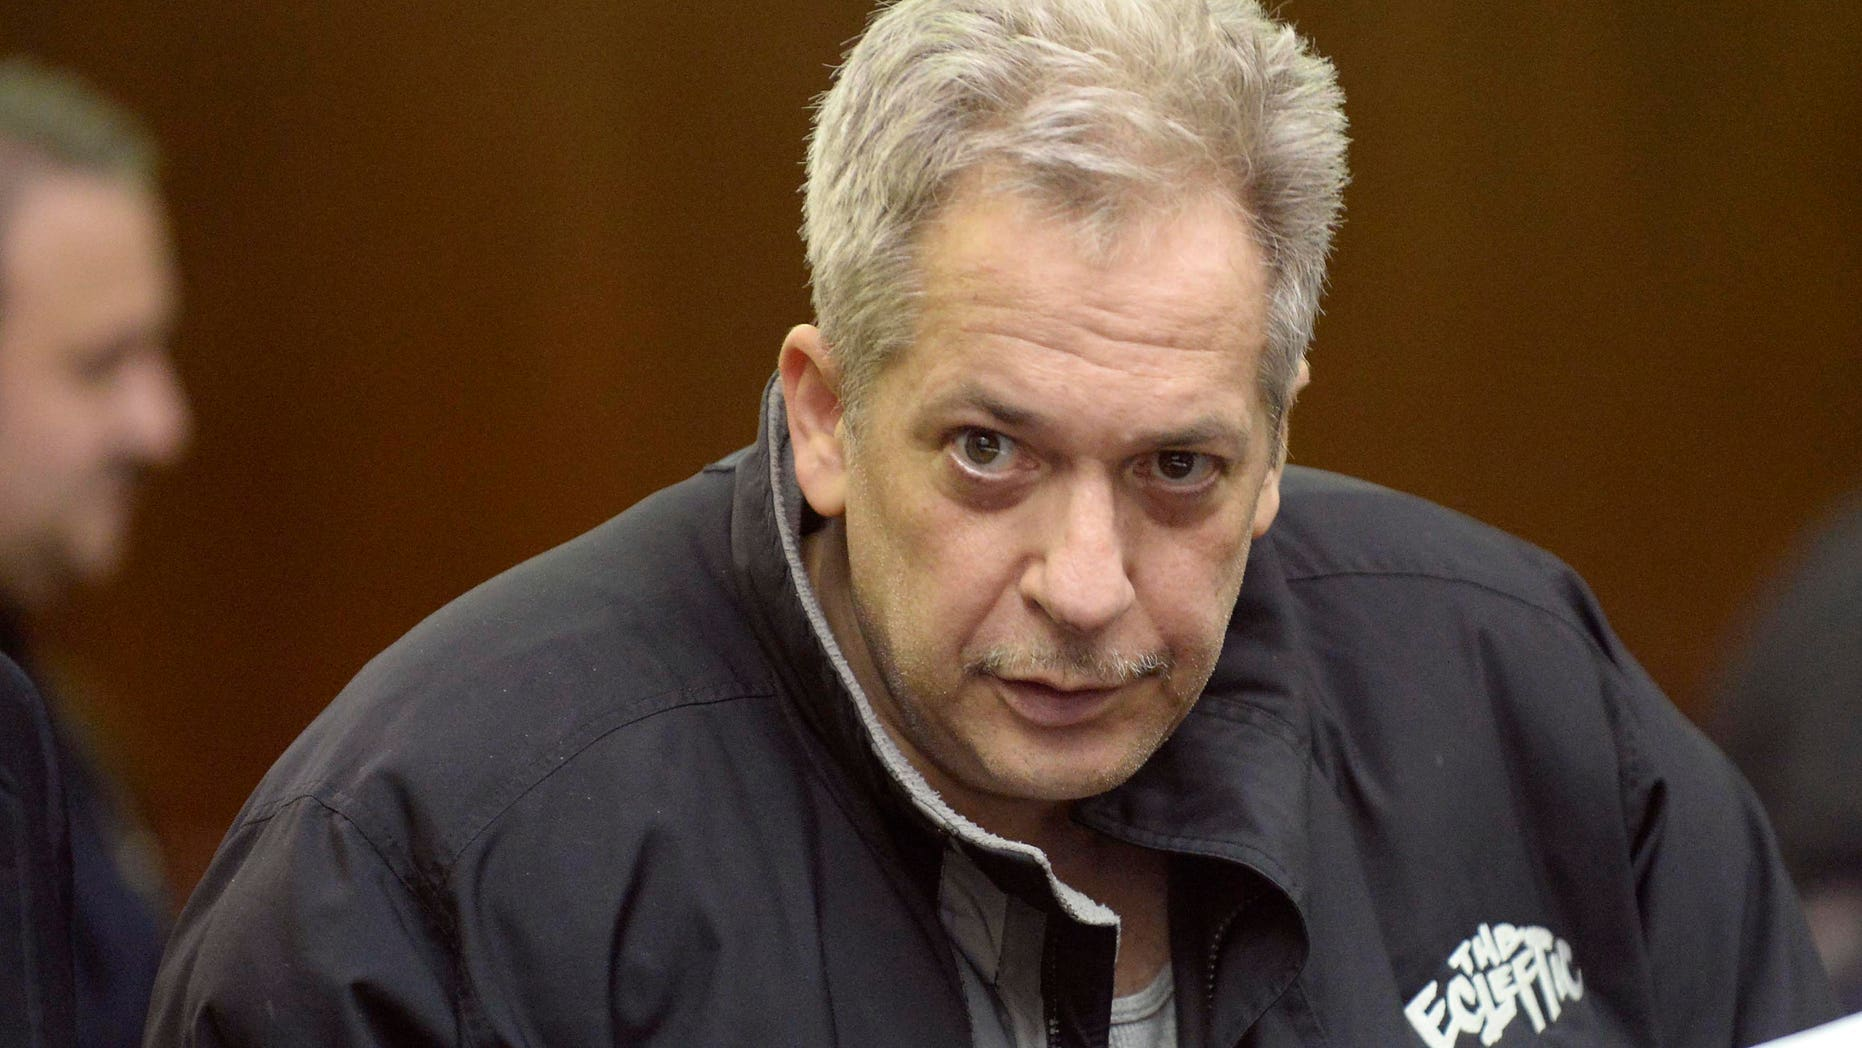 February 5, 2014. Robert Vineberg stares at a camera during his arraignment in court in New York. Three men and one woman arrested in New York have been charged with drugs offences possibly connected to narcotics found at the home of film star Philip Seymour Hoffman following his death of an apparent heroin overdose, law enforcement officials said.